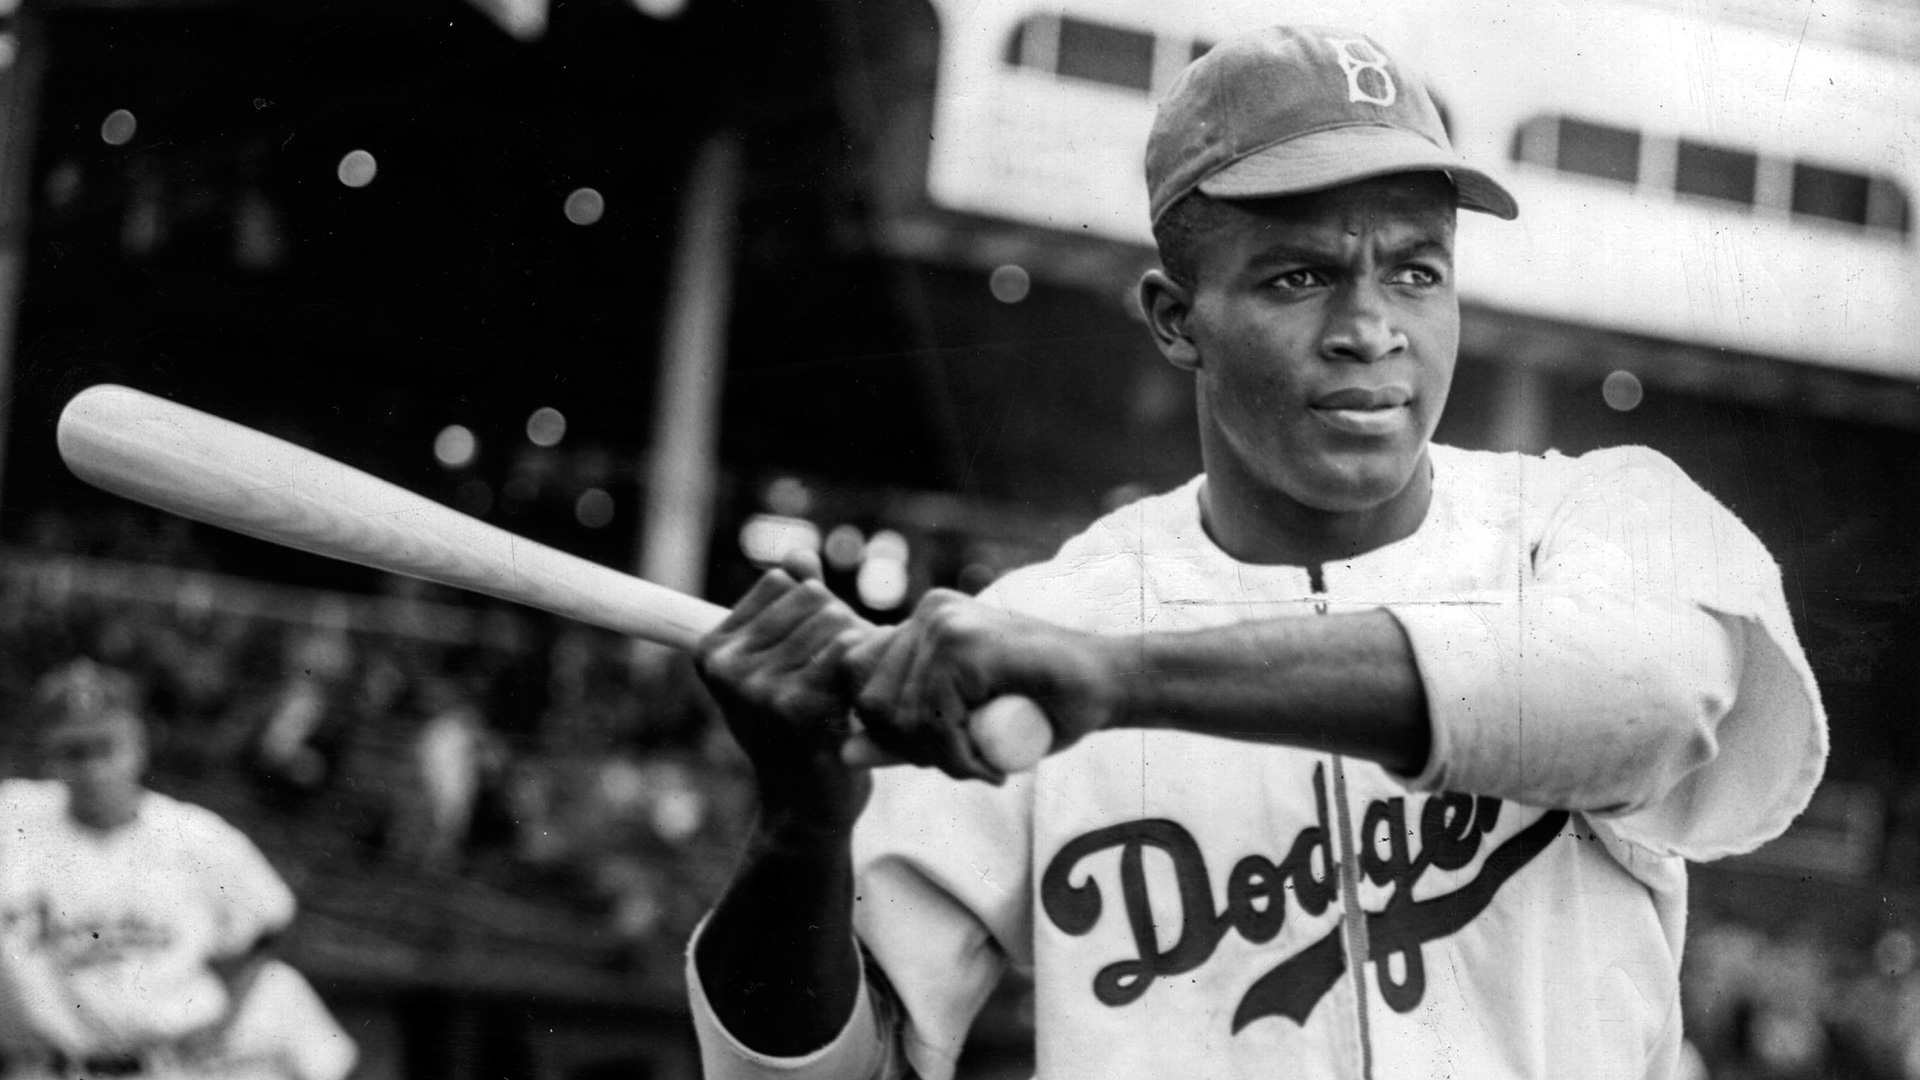 42: Jackie Robinson and His Faith